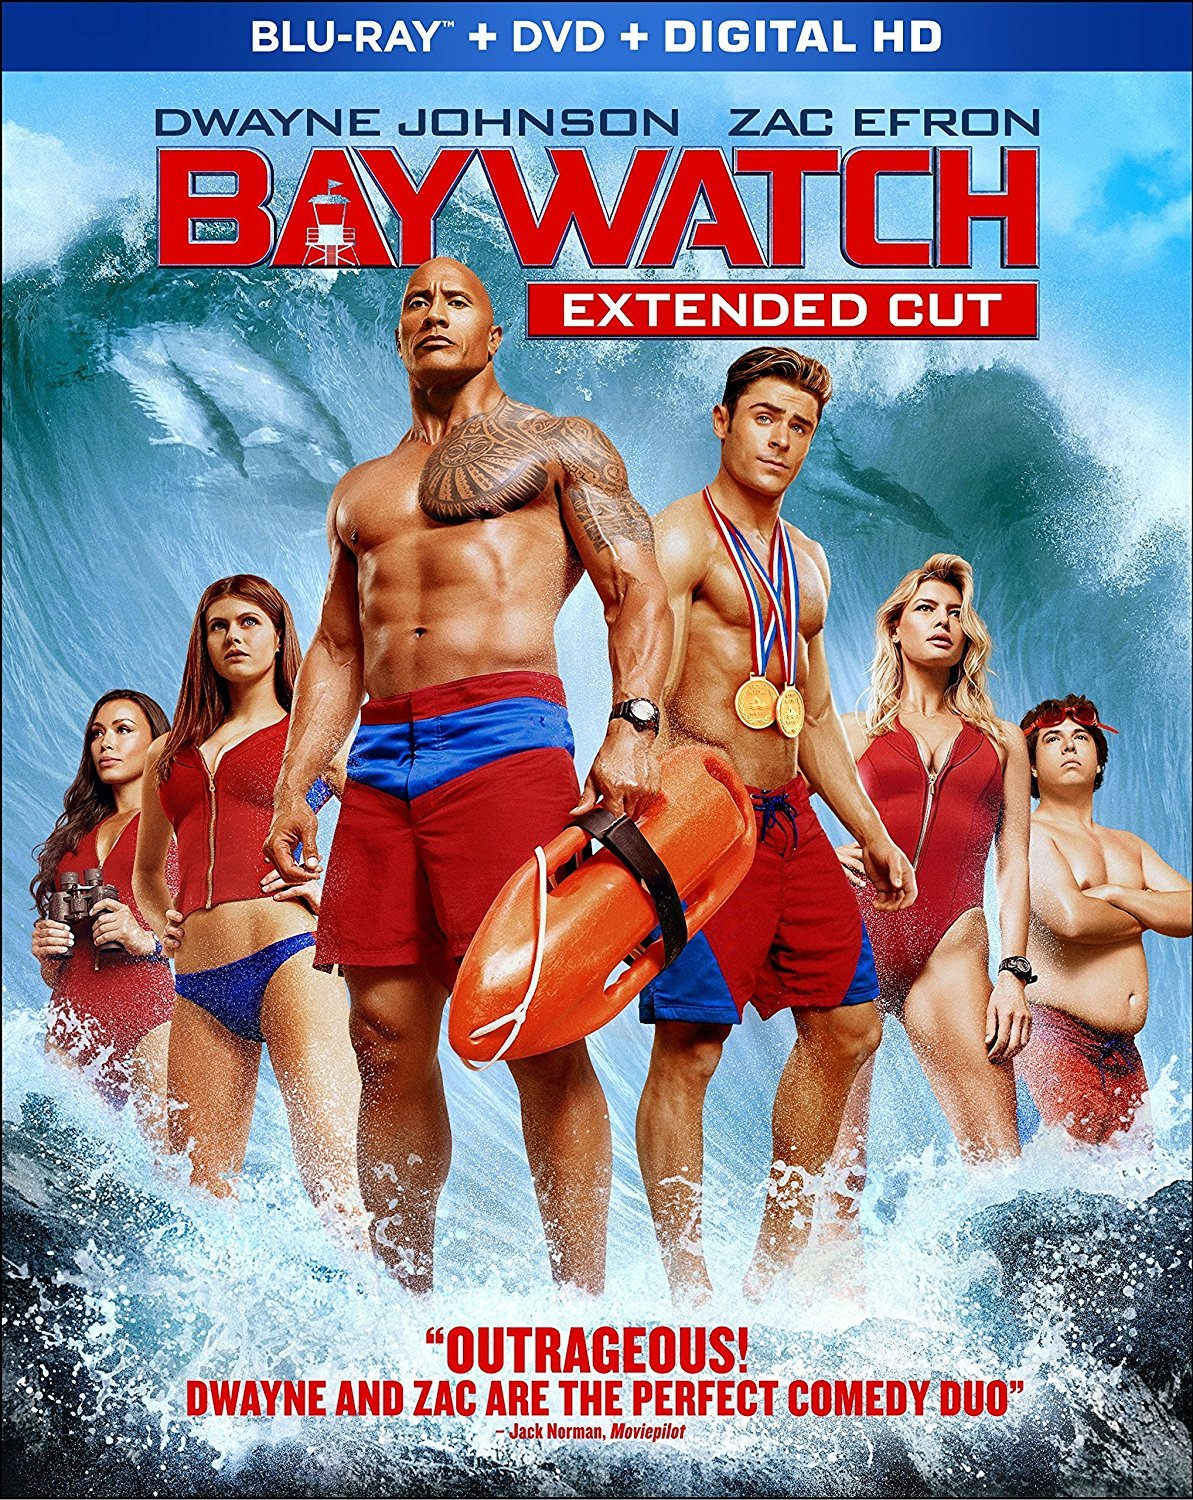 Baywatch (2017) poster image